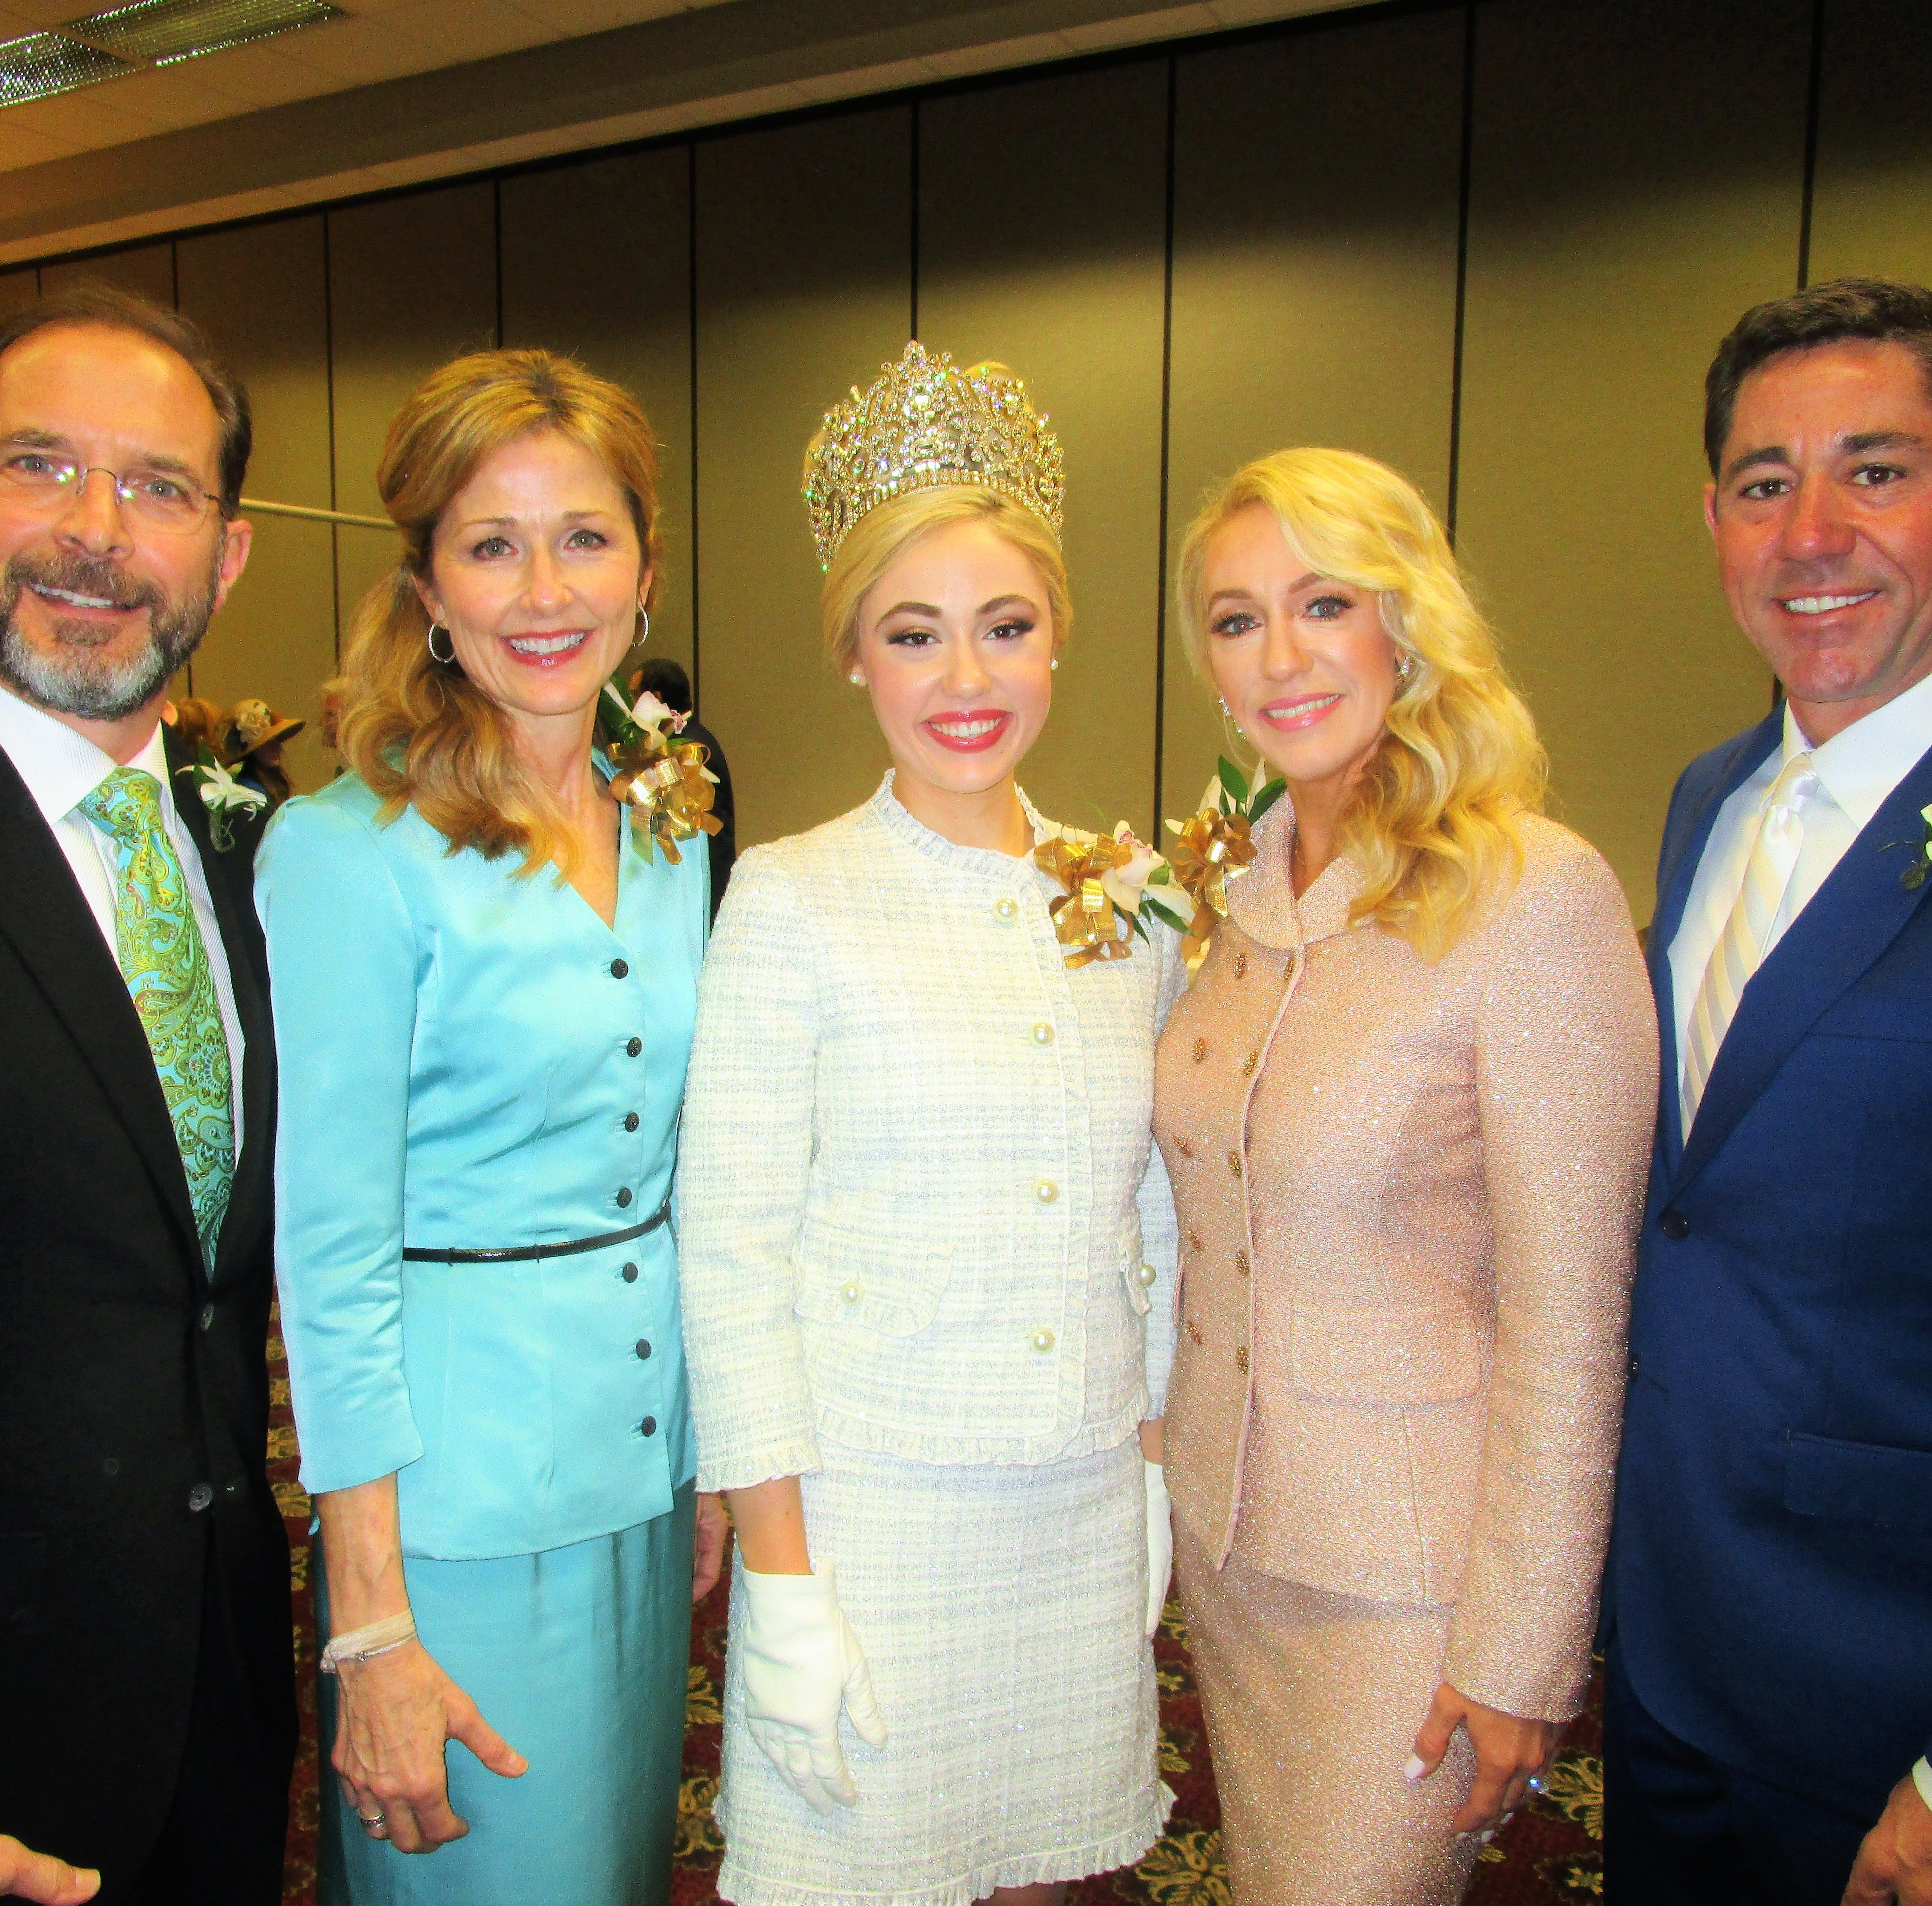 Gabriel King's luncheon celebrates the 80th monarch